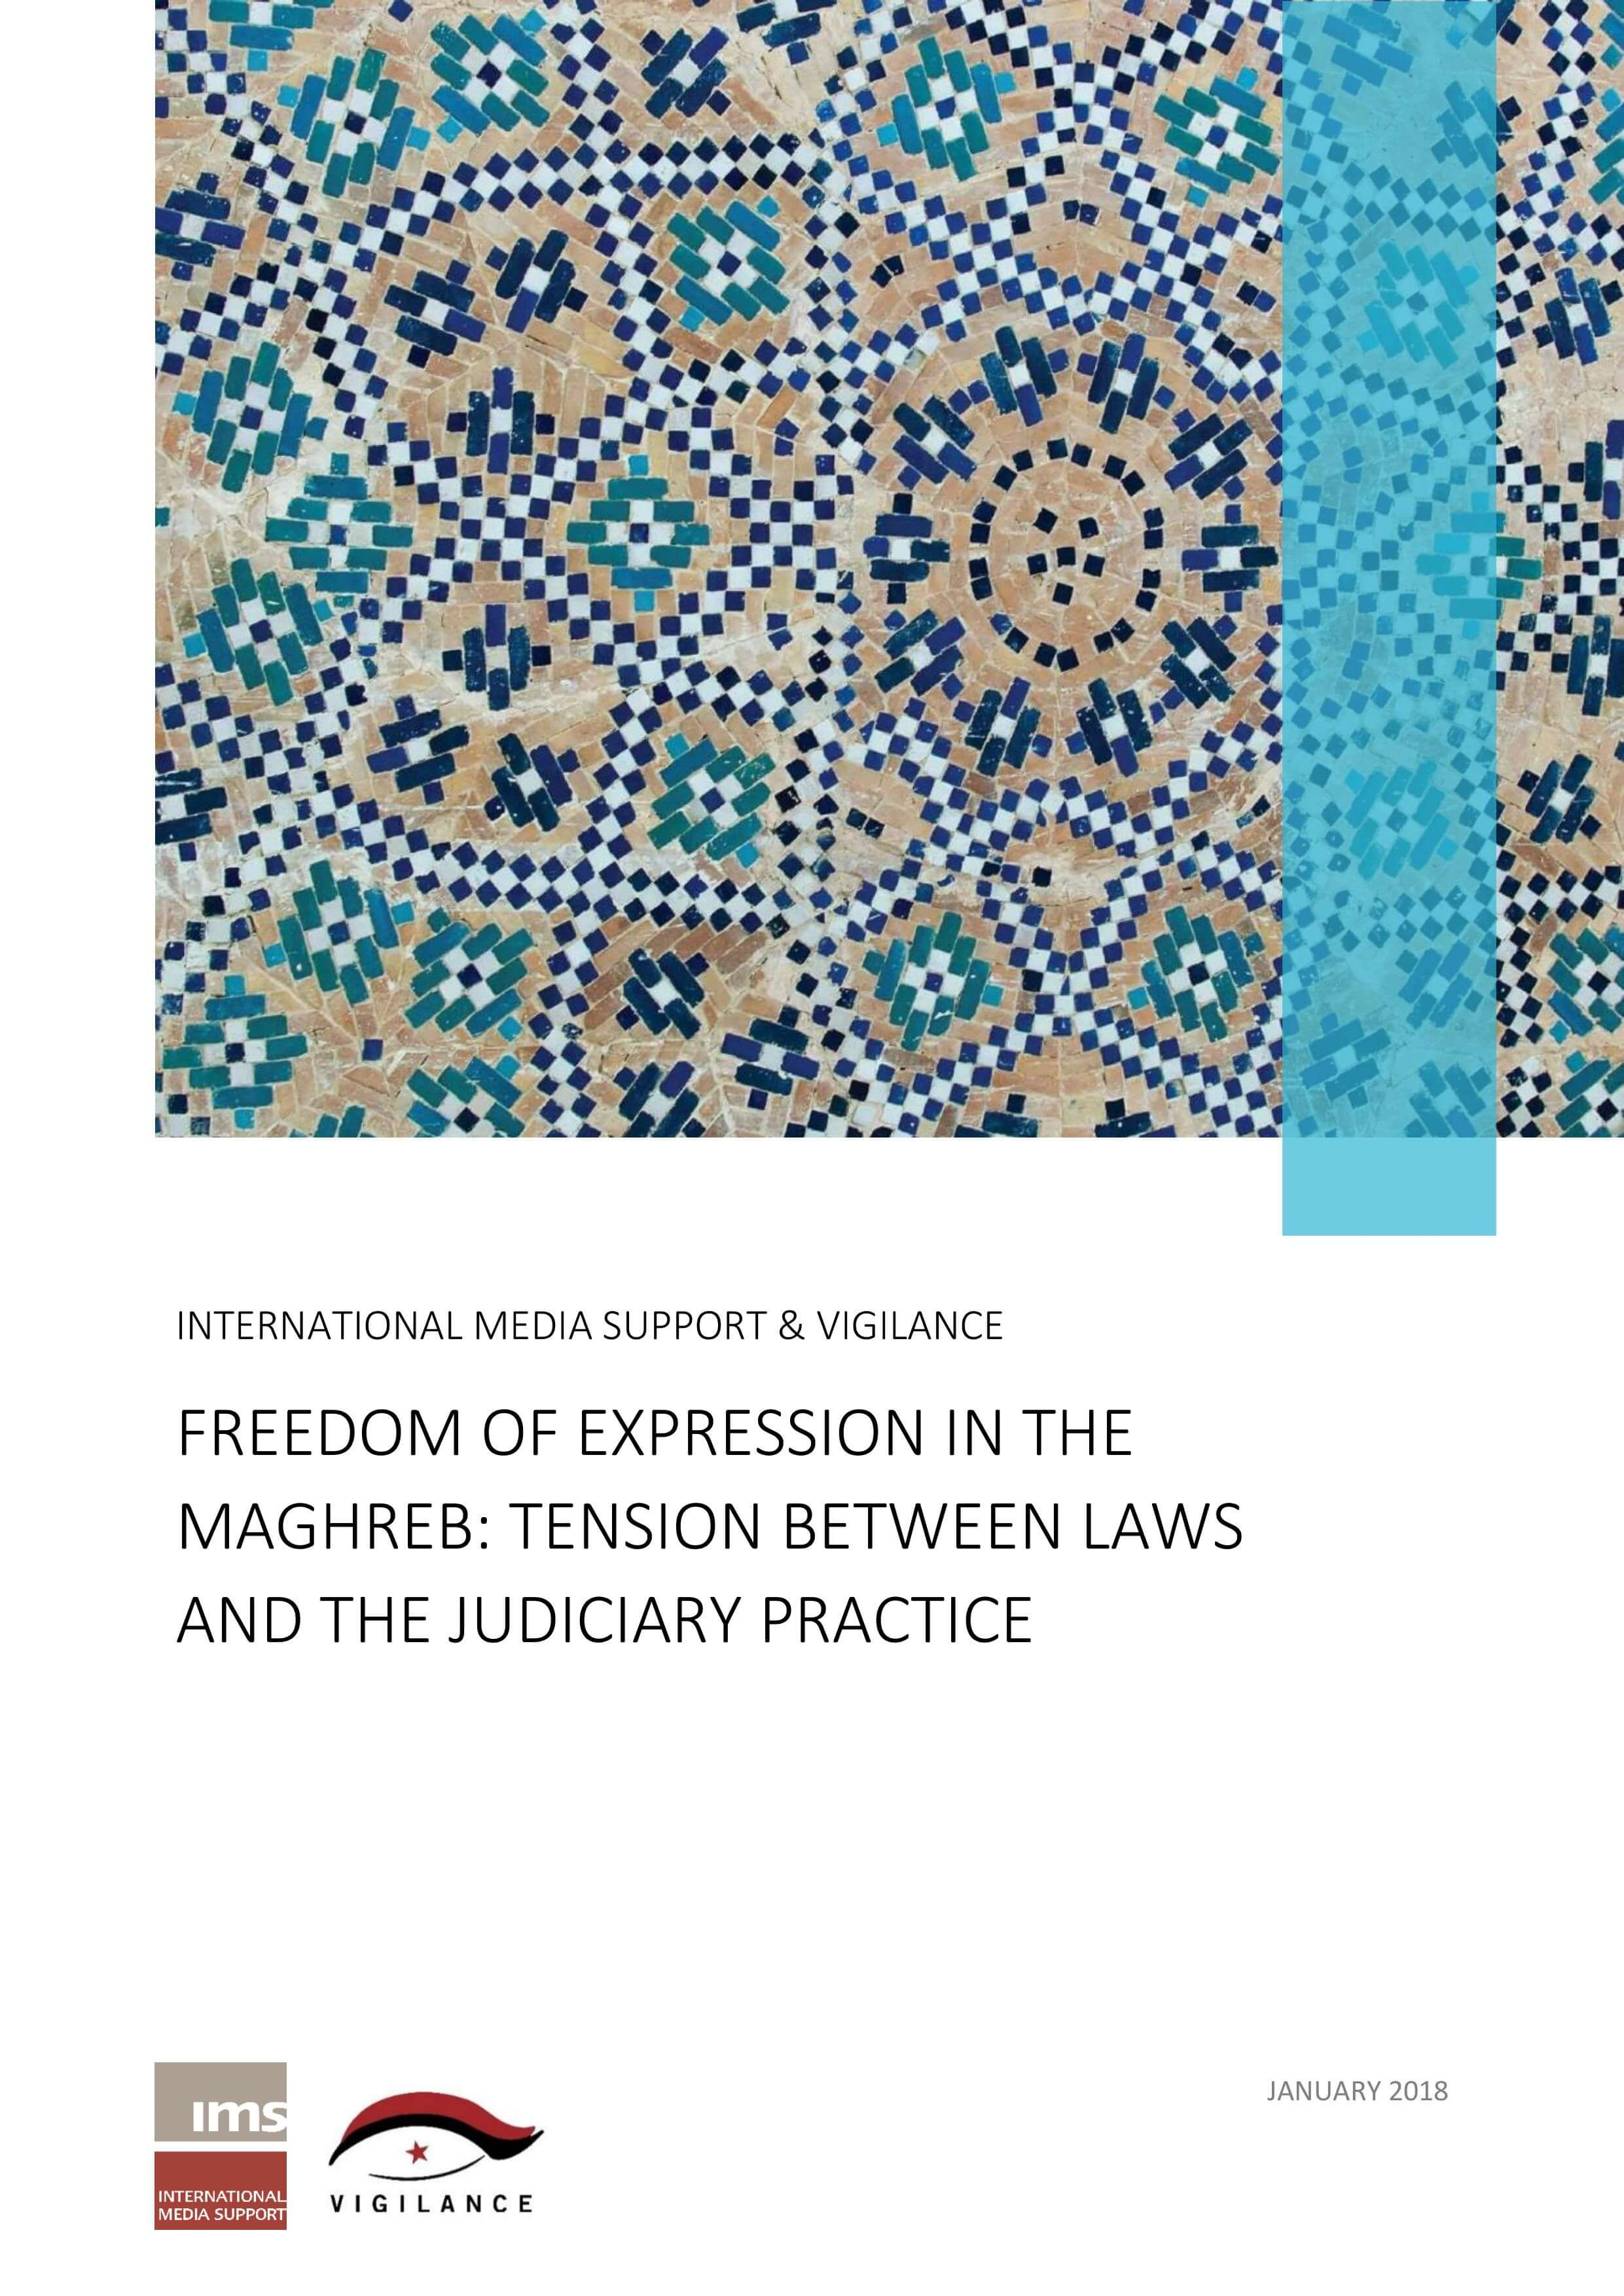 Freedom of expression in the Maghreb